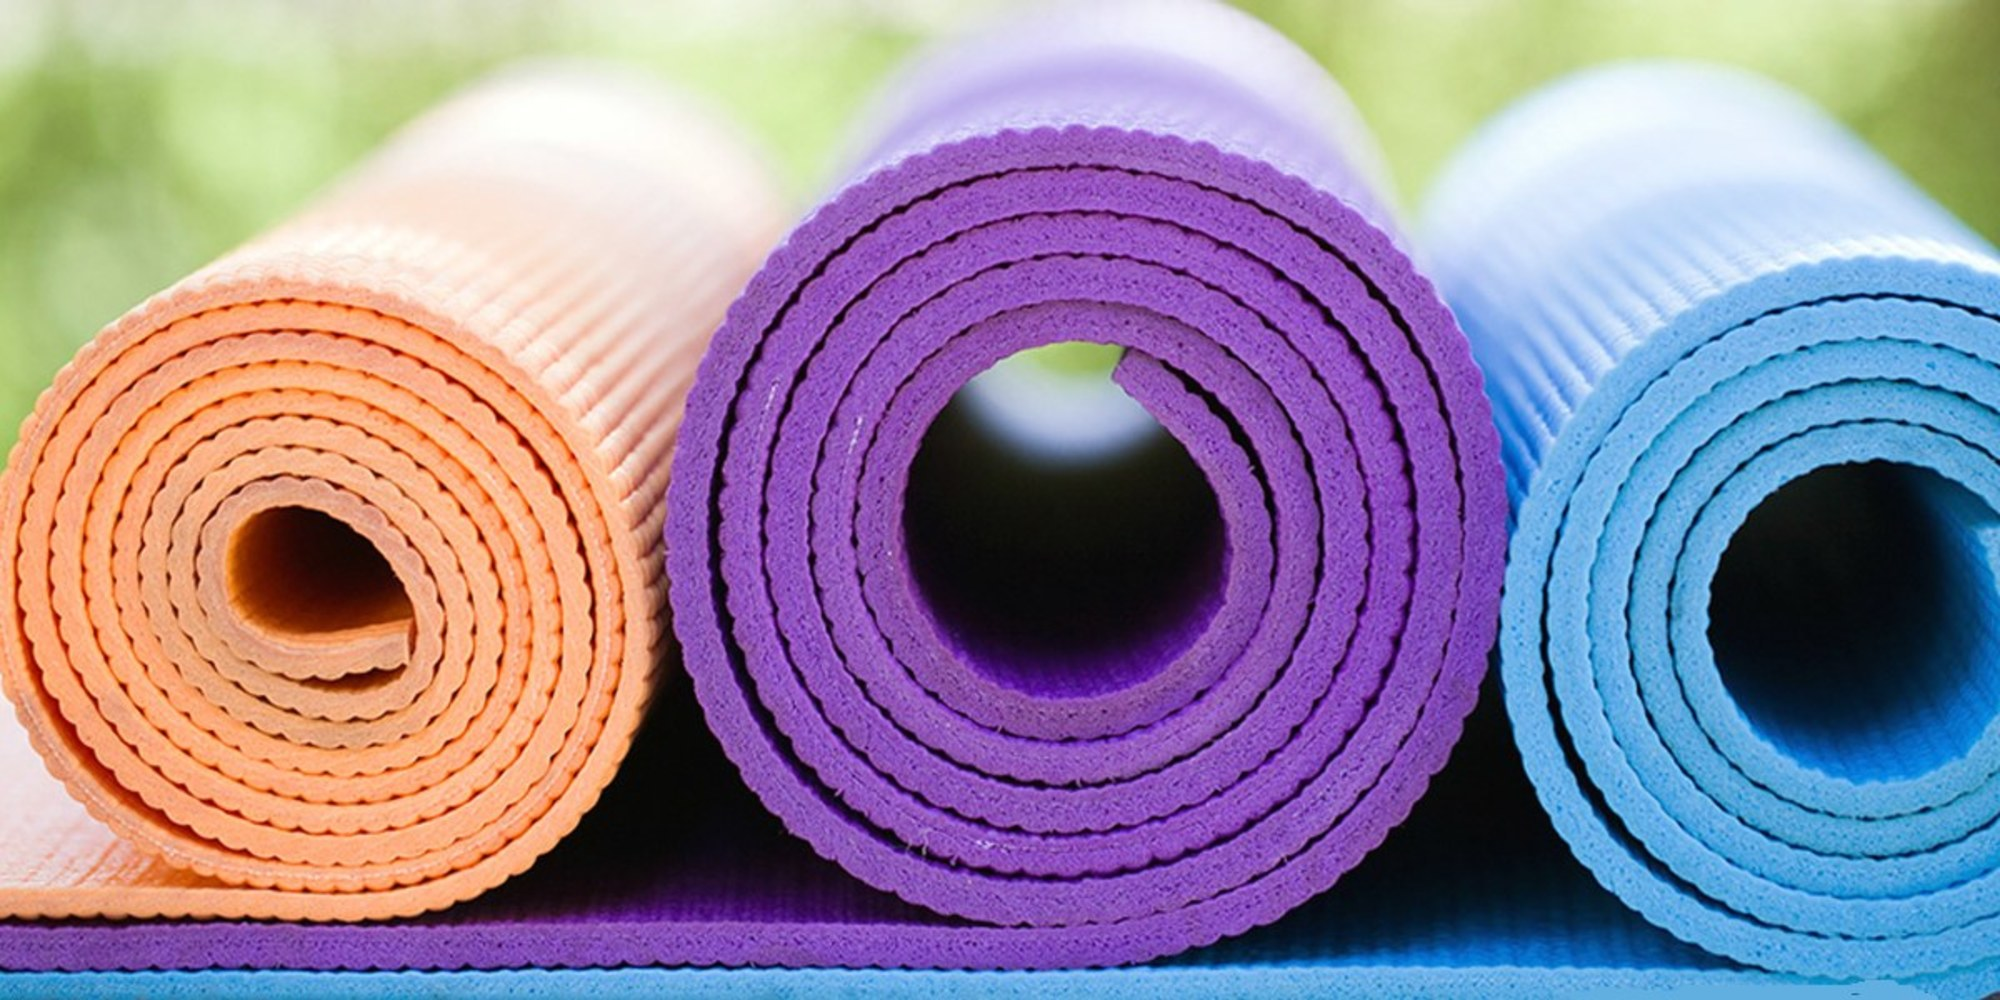 Why do we use a yoga mat? 3